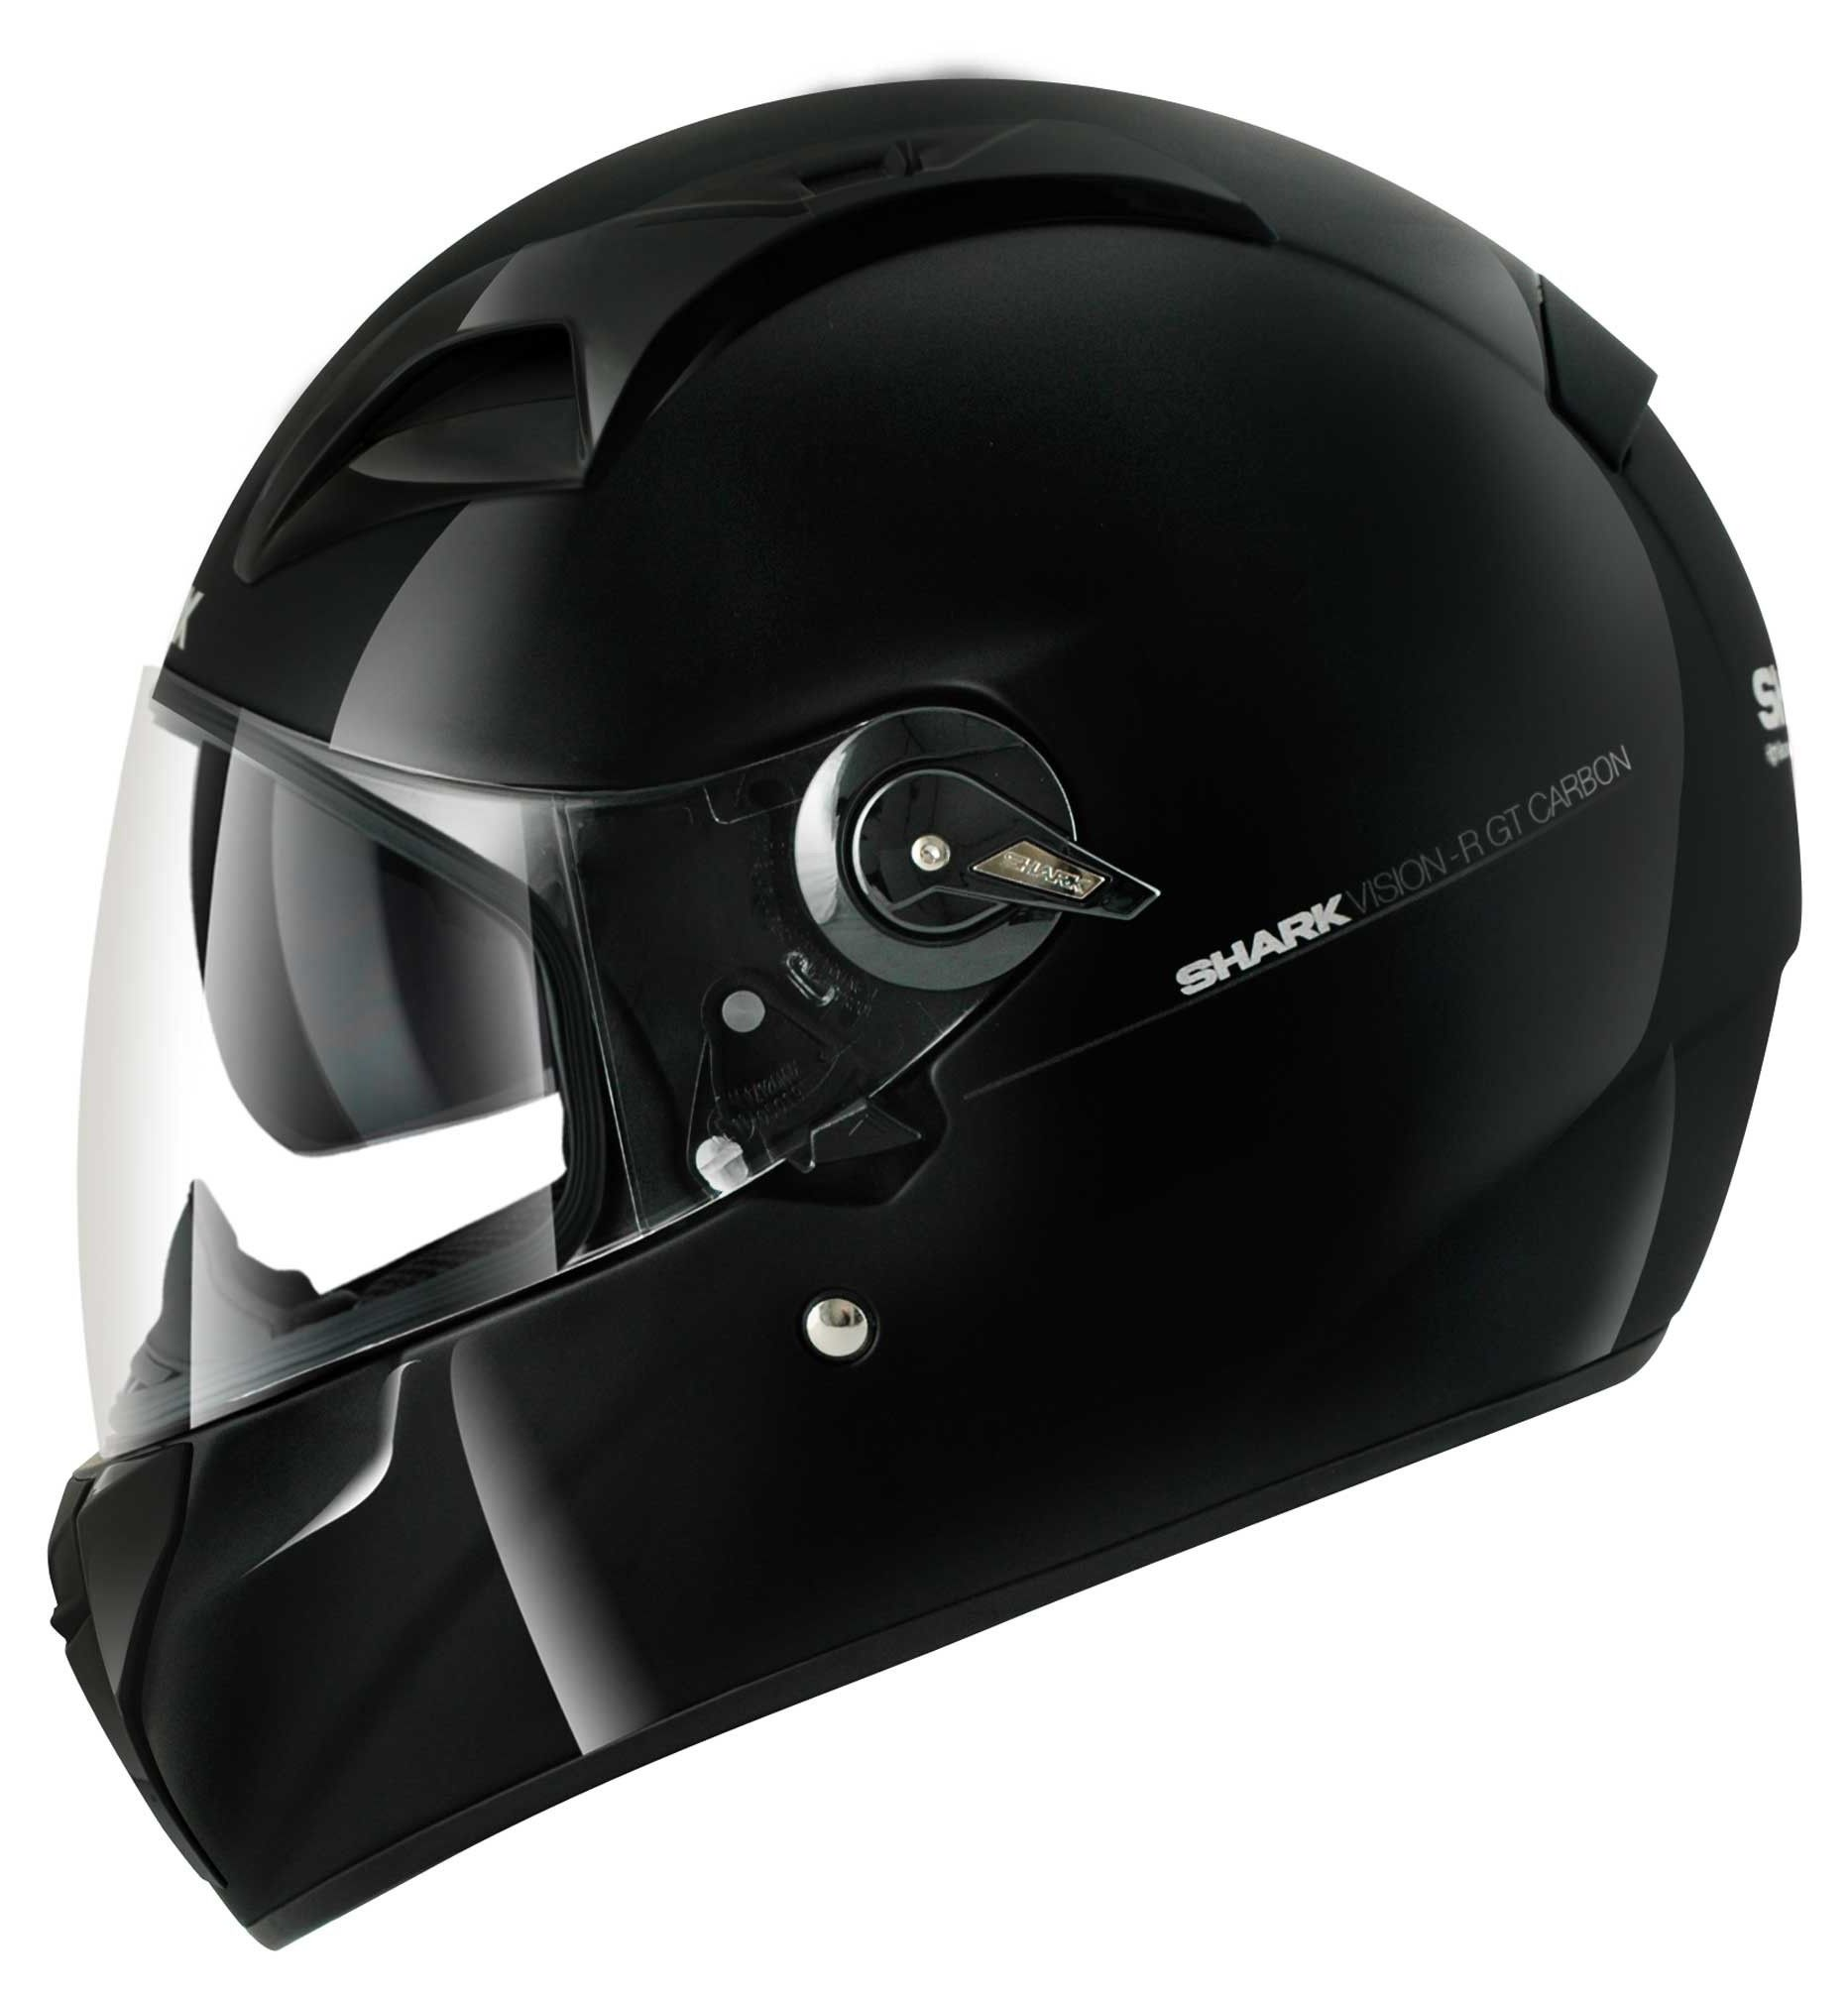 shark vision r series 2 helmet 37 off revzilla. Black Bedroom Furniture Sets. Home Design Ideas